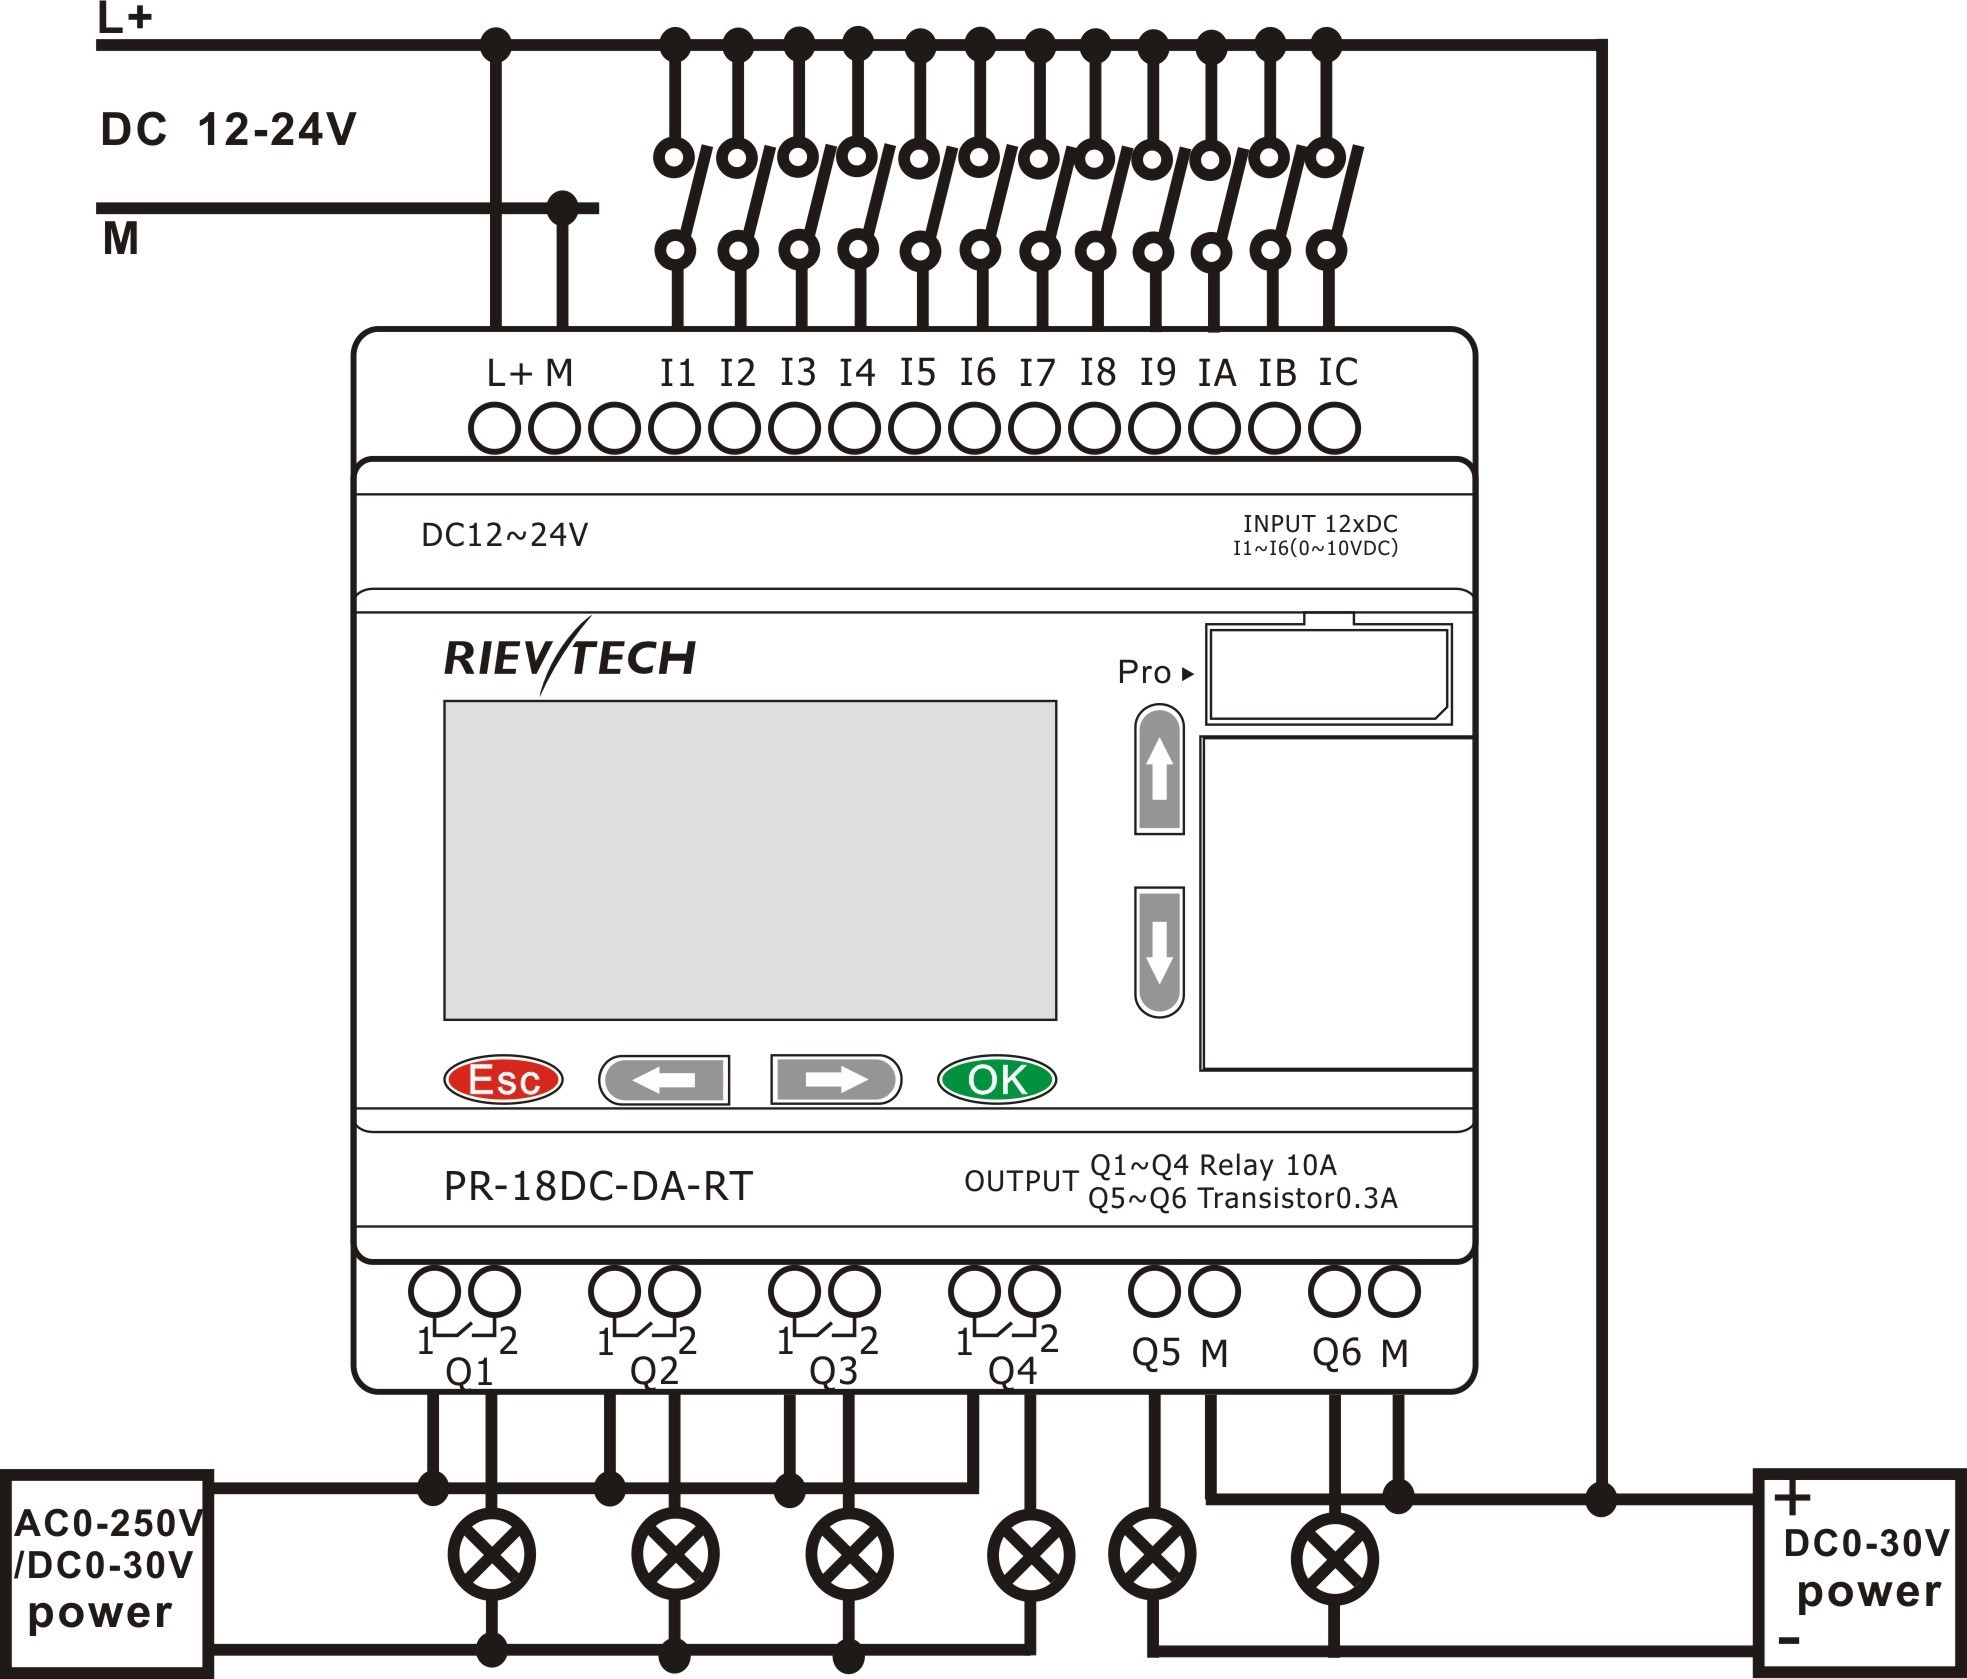 hight resolution of plc control panel wiring diagram pdf plc wiring diagram guide gambar wiring diagram relay best